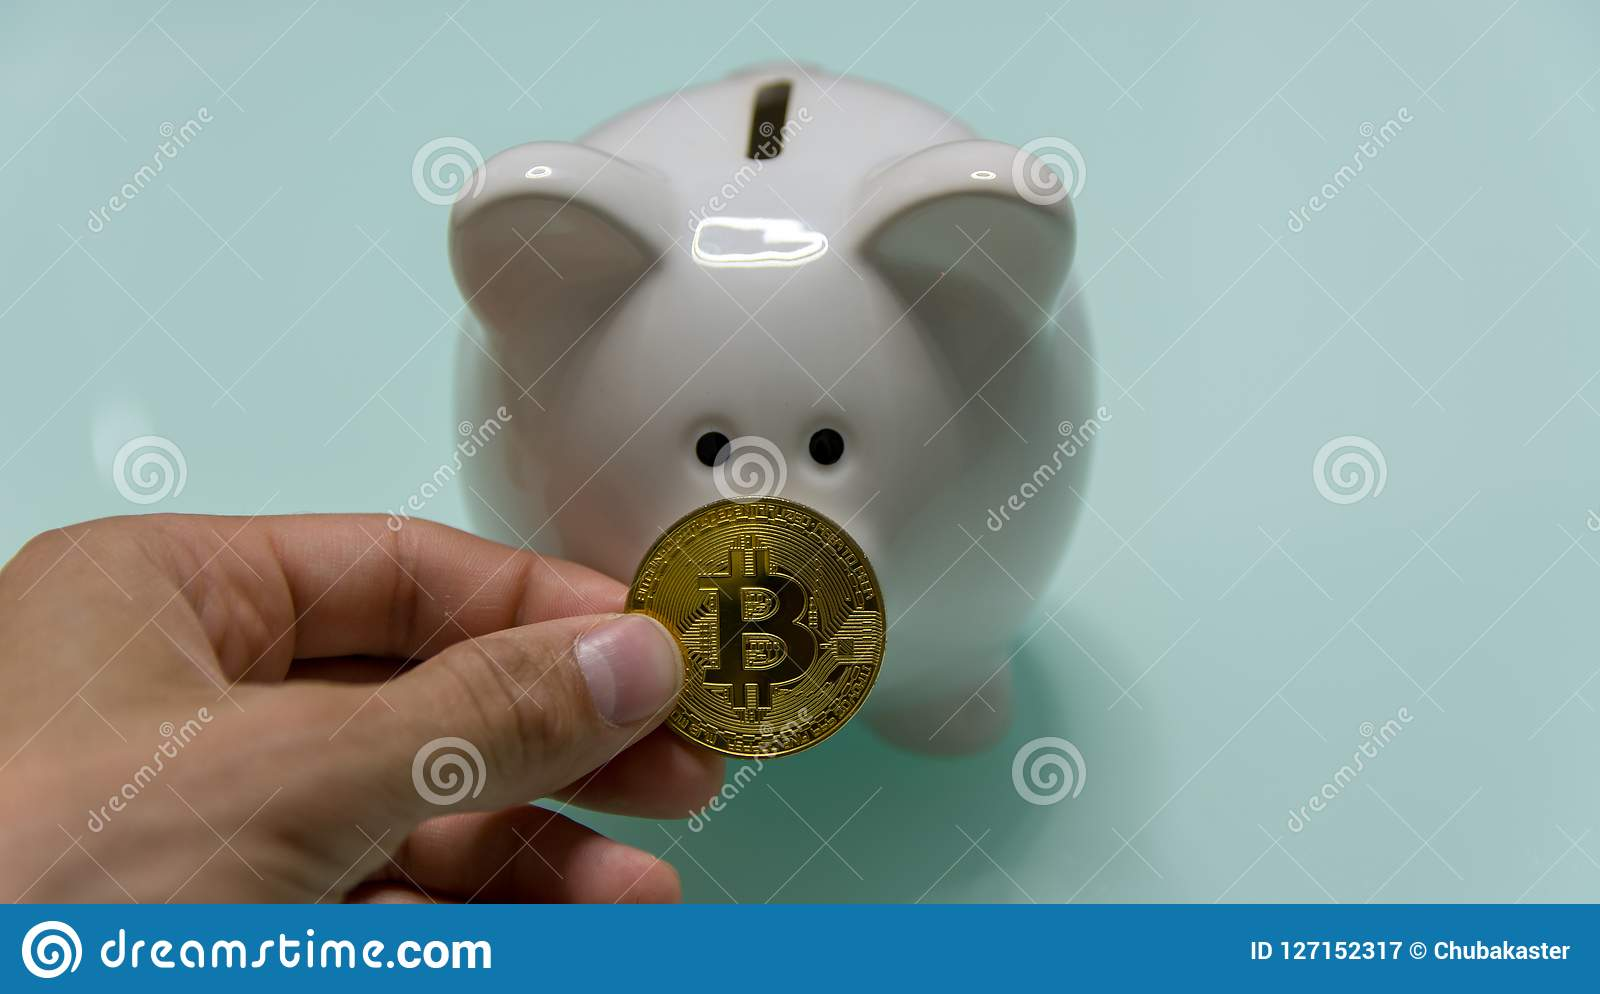 Ceramic Piggy bank with bitcoin in bam hand on front of image closeup